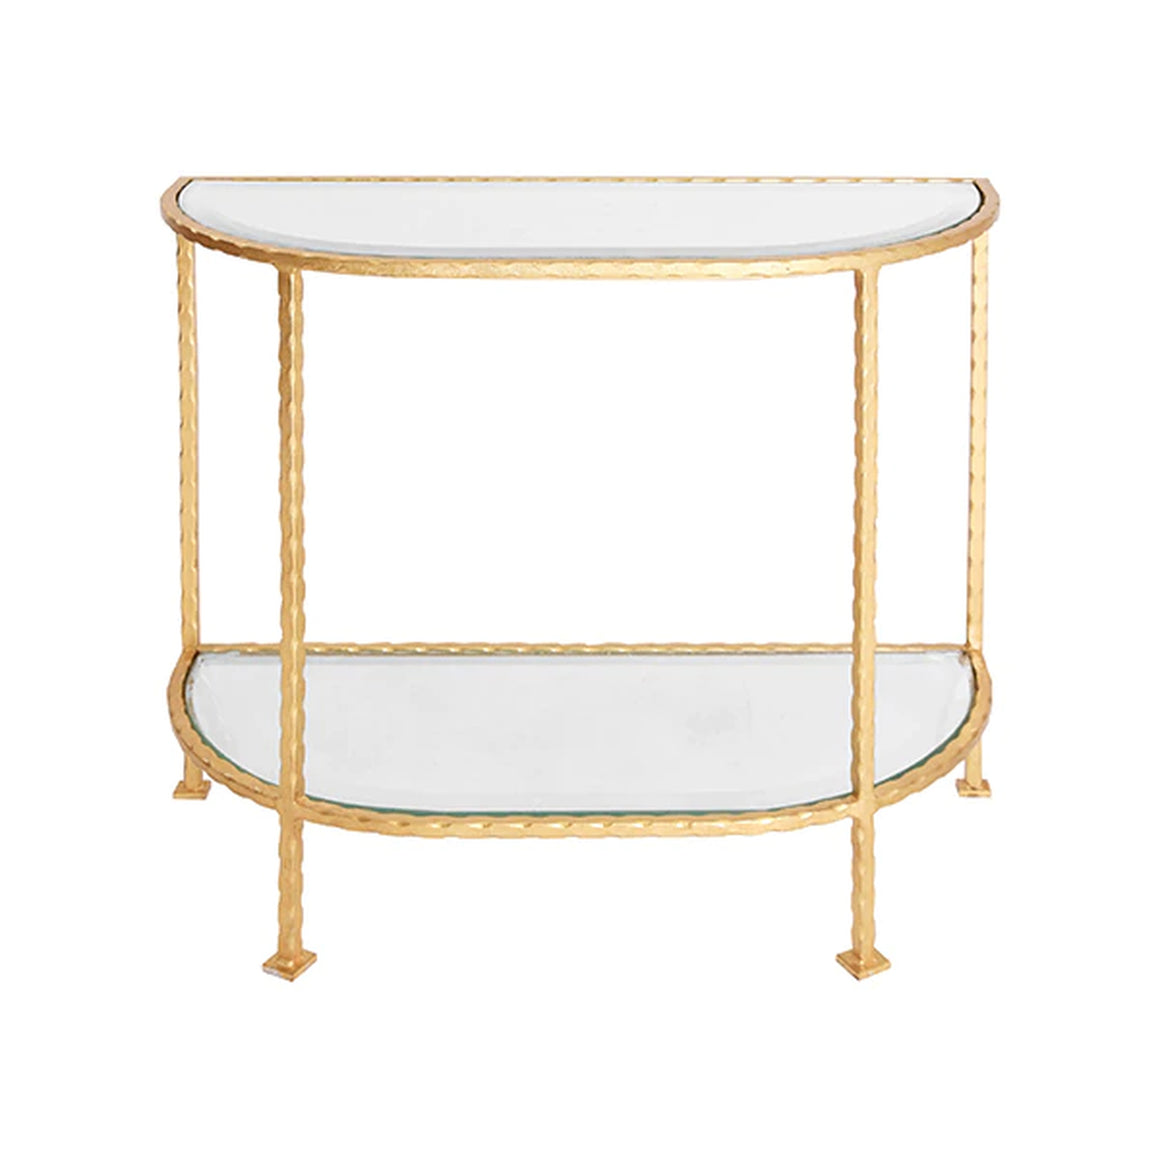 Worlds Away Iron Side Table - Gold Leaf